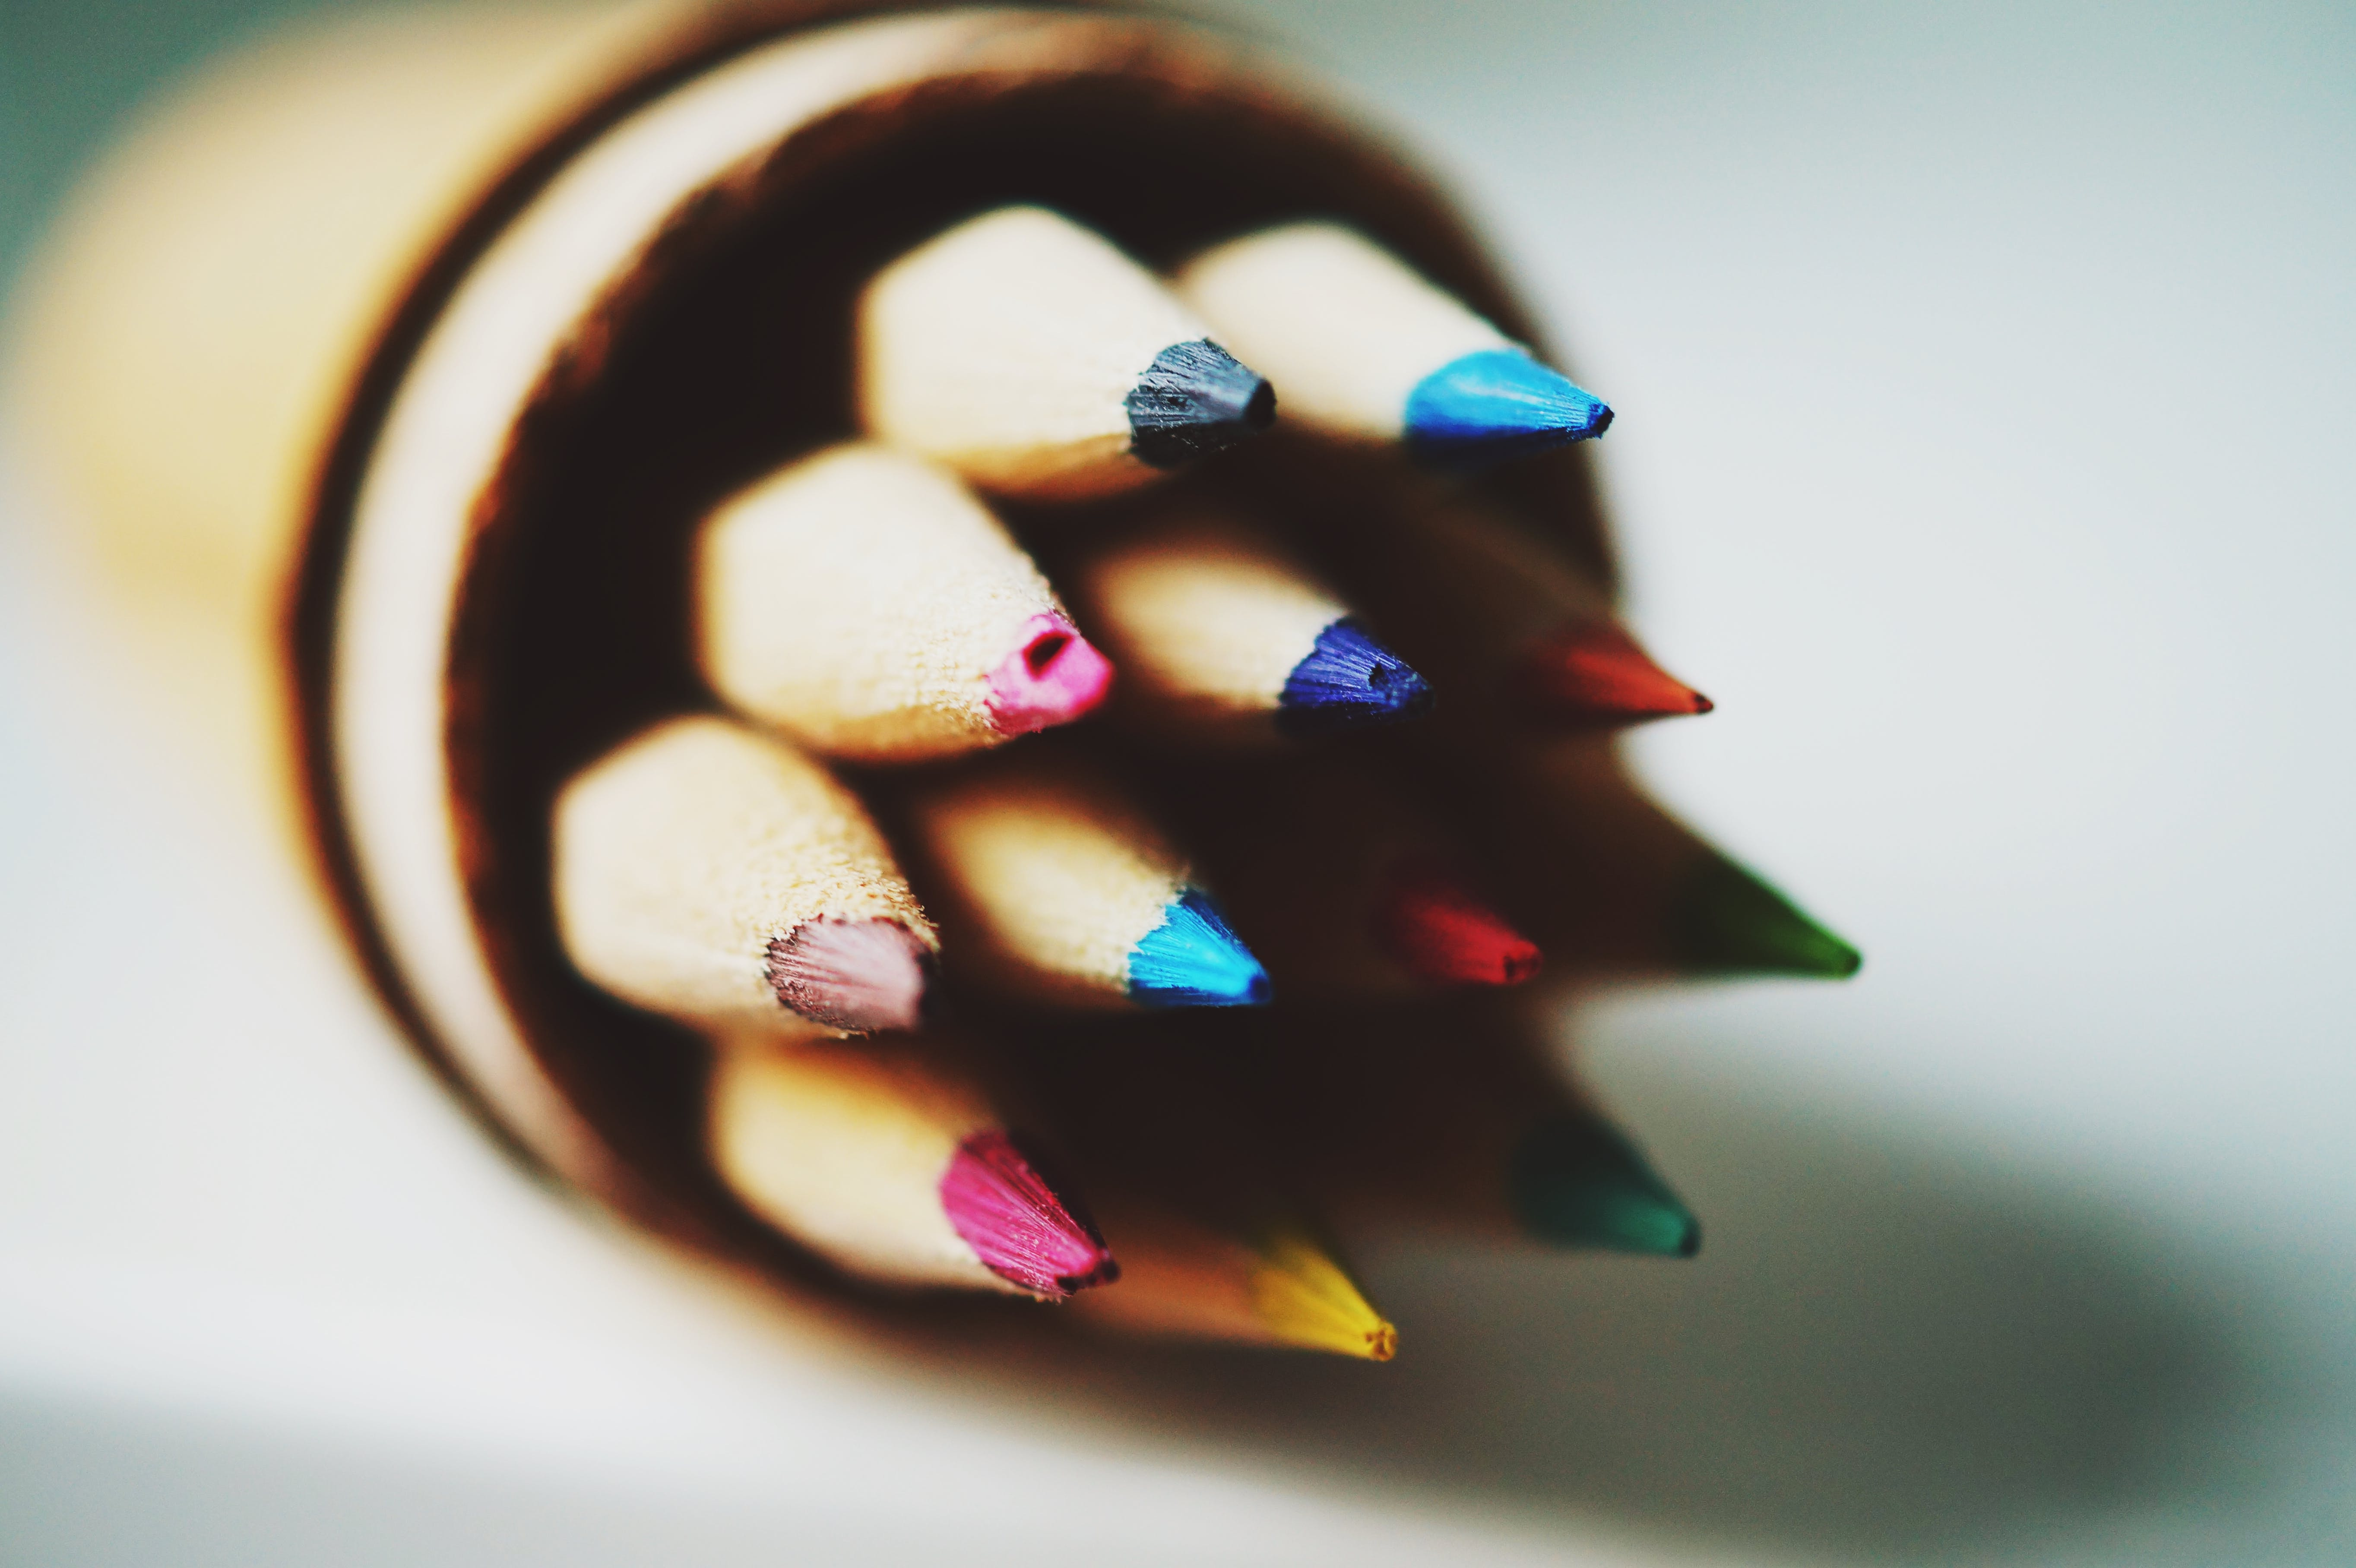 Colored Pencil in Tilt Shift Lens